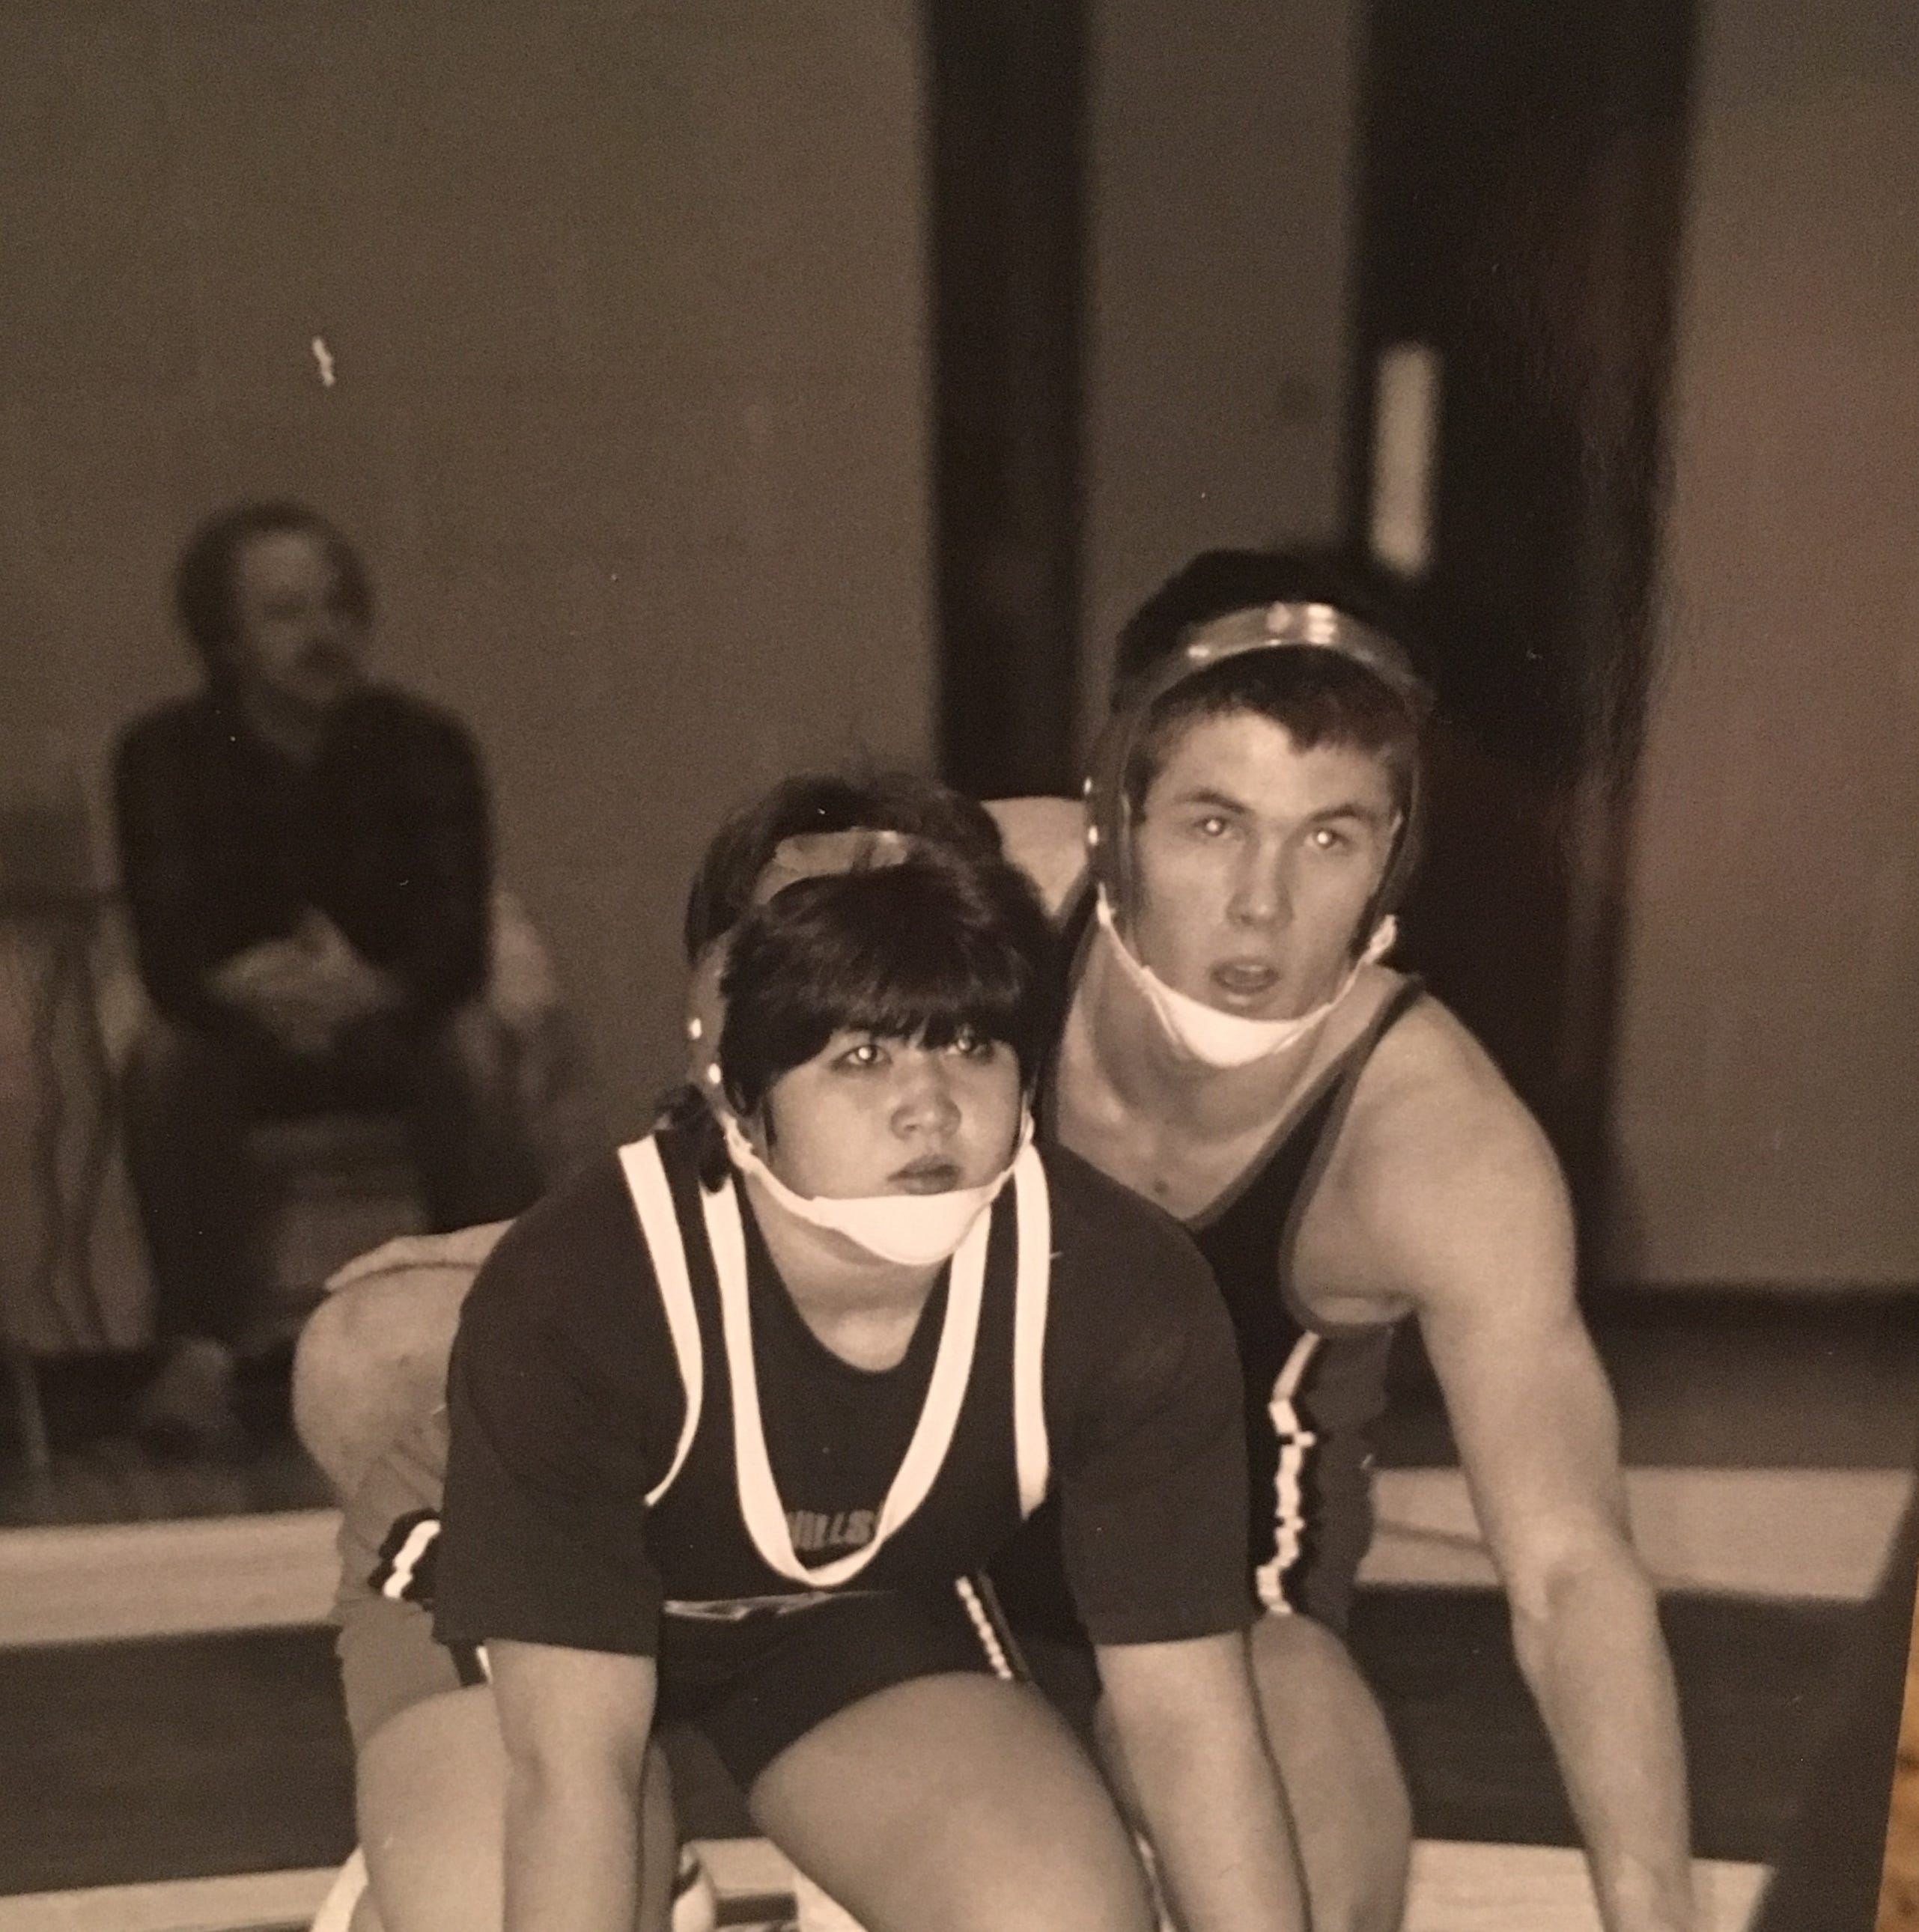 Liliko Ogasawara, New Jersey's first female varsity wrestler, shook the sport's foundation